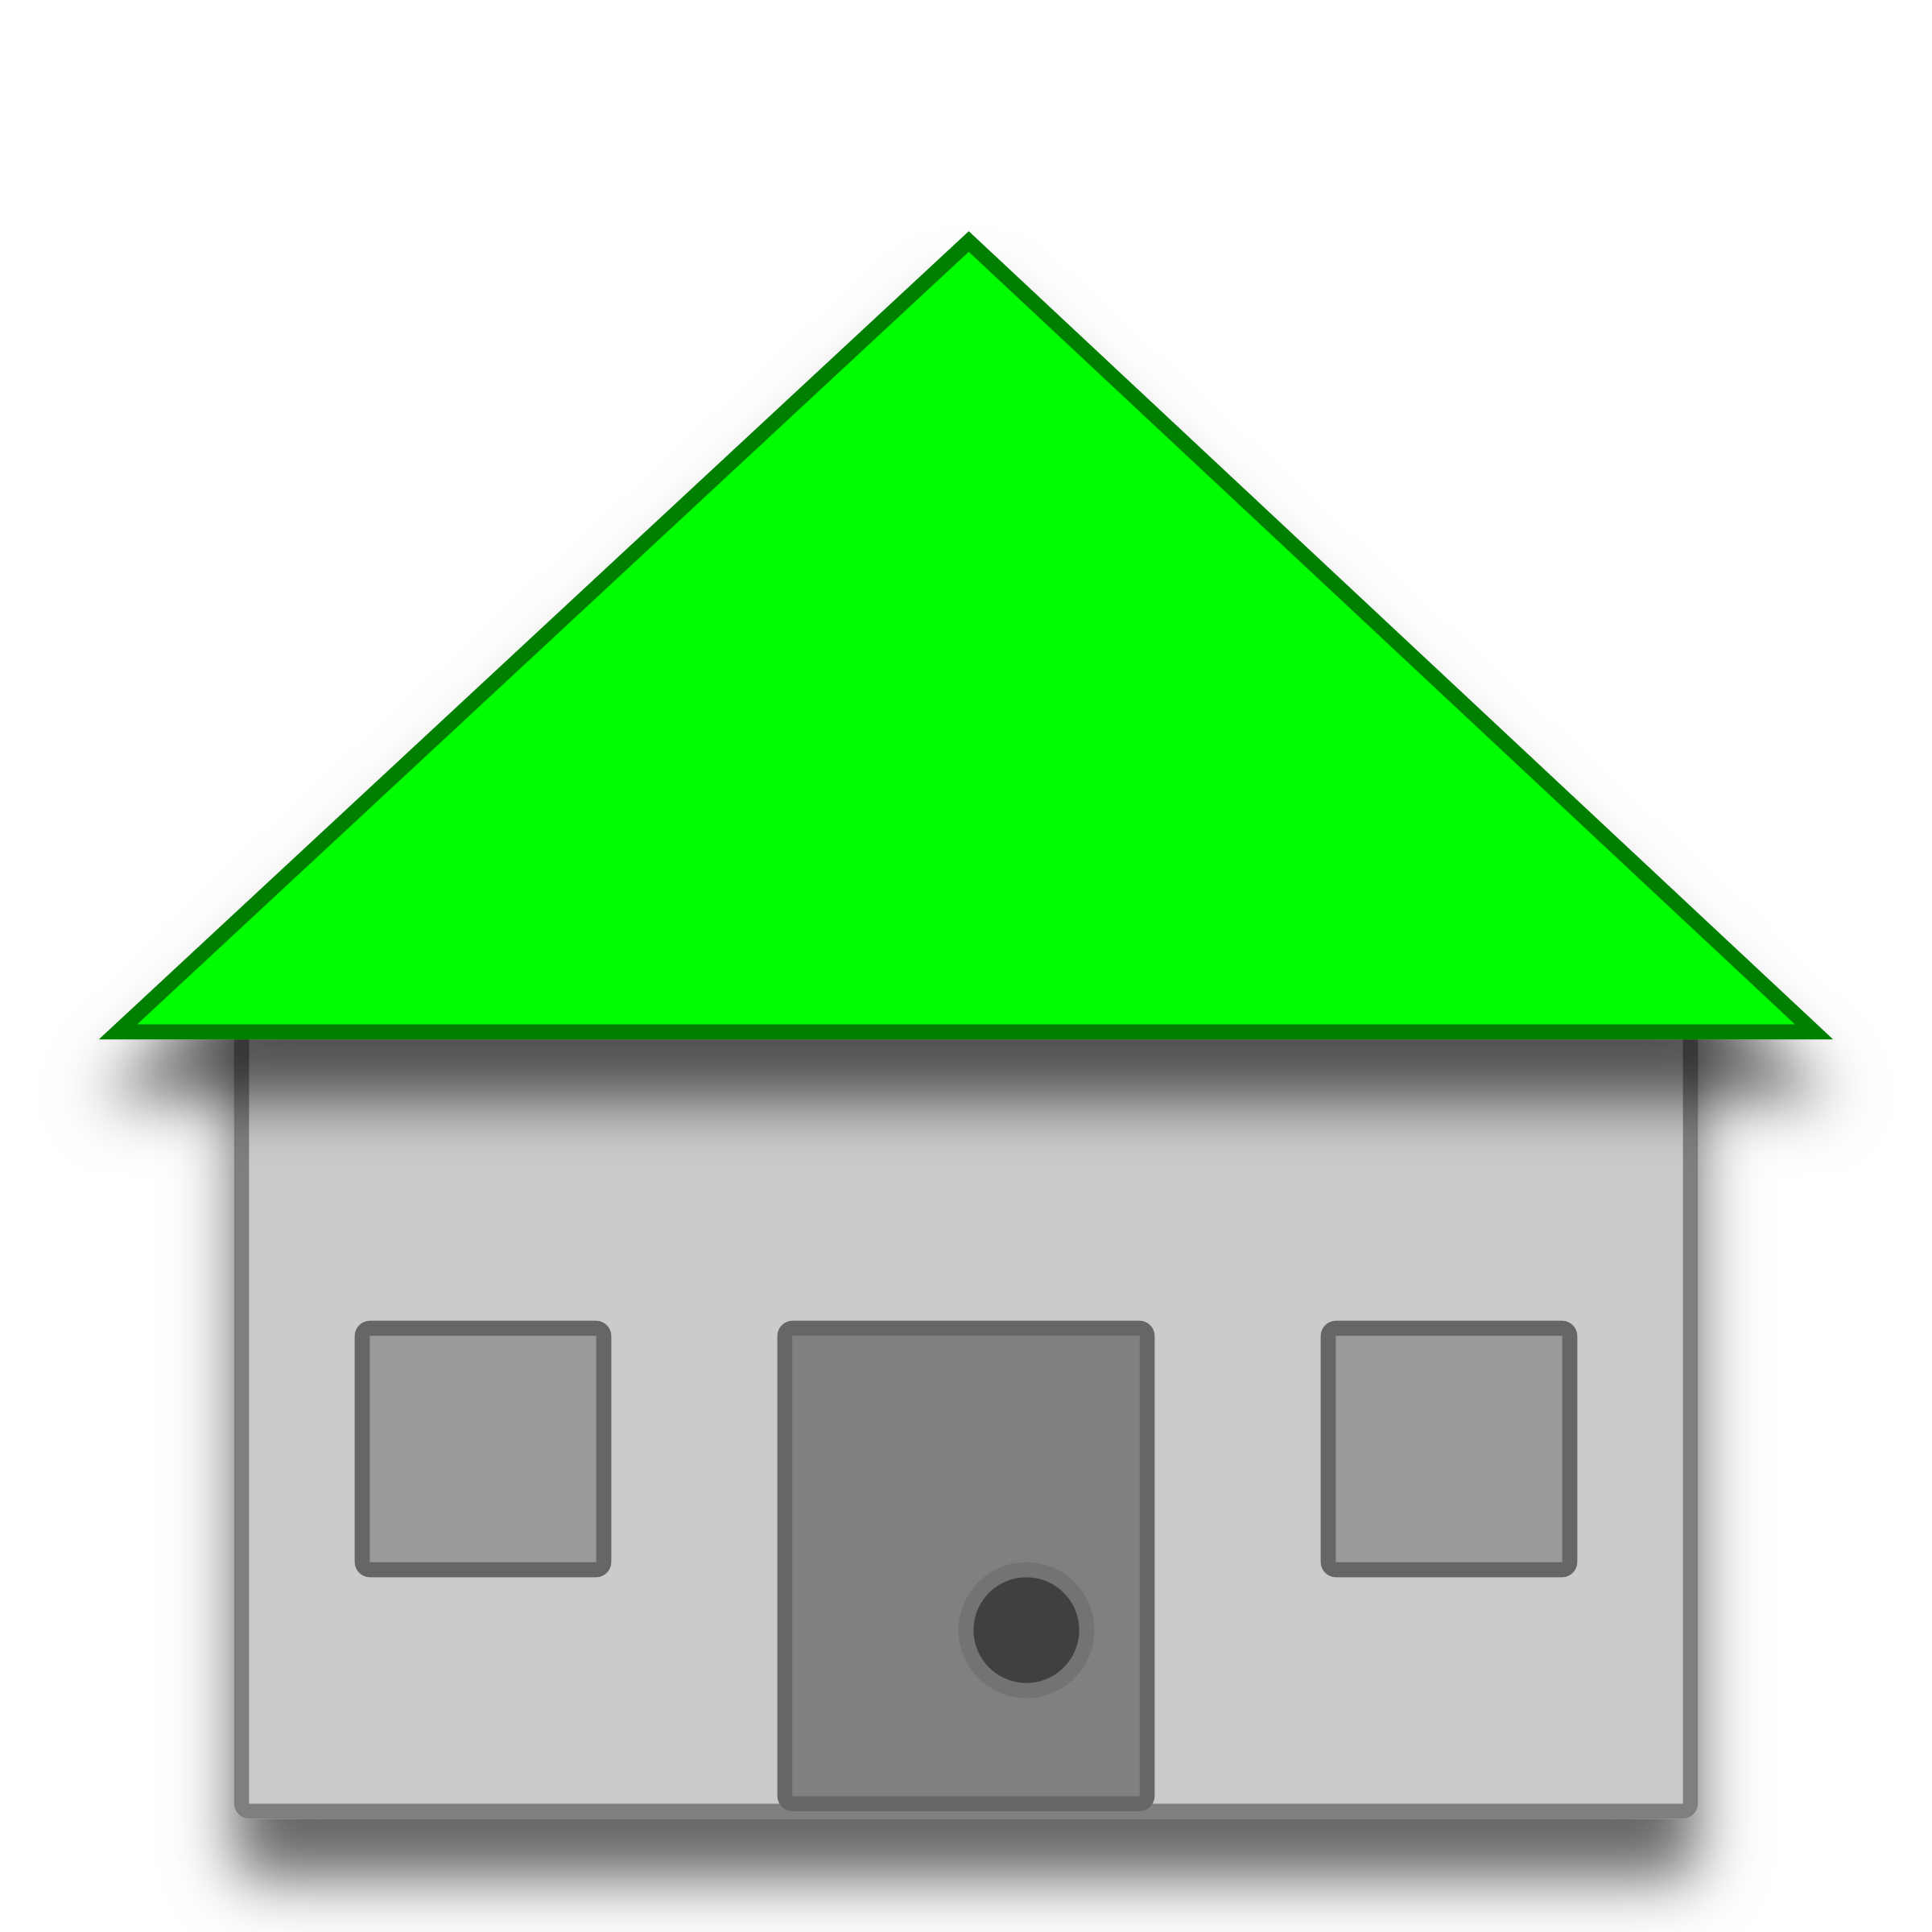 Home icon by gadgetscode